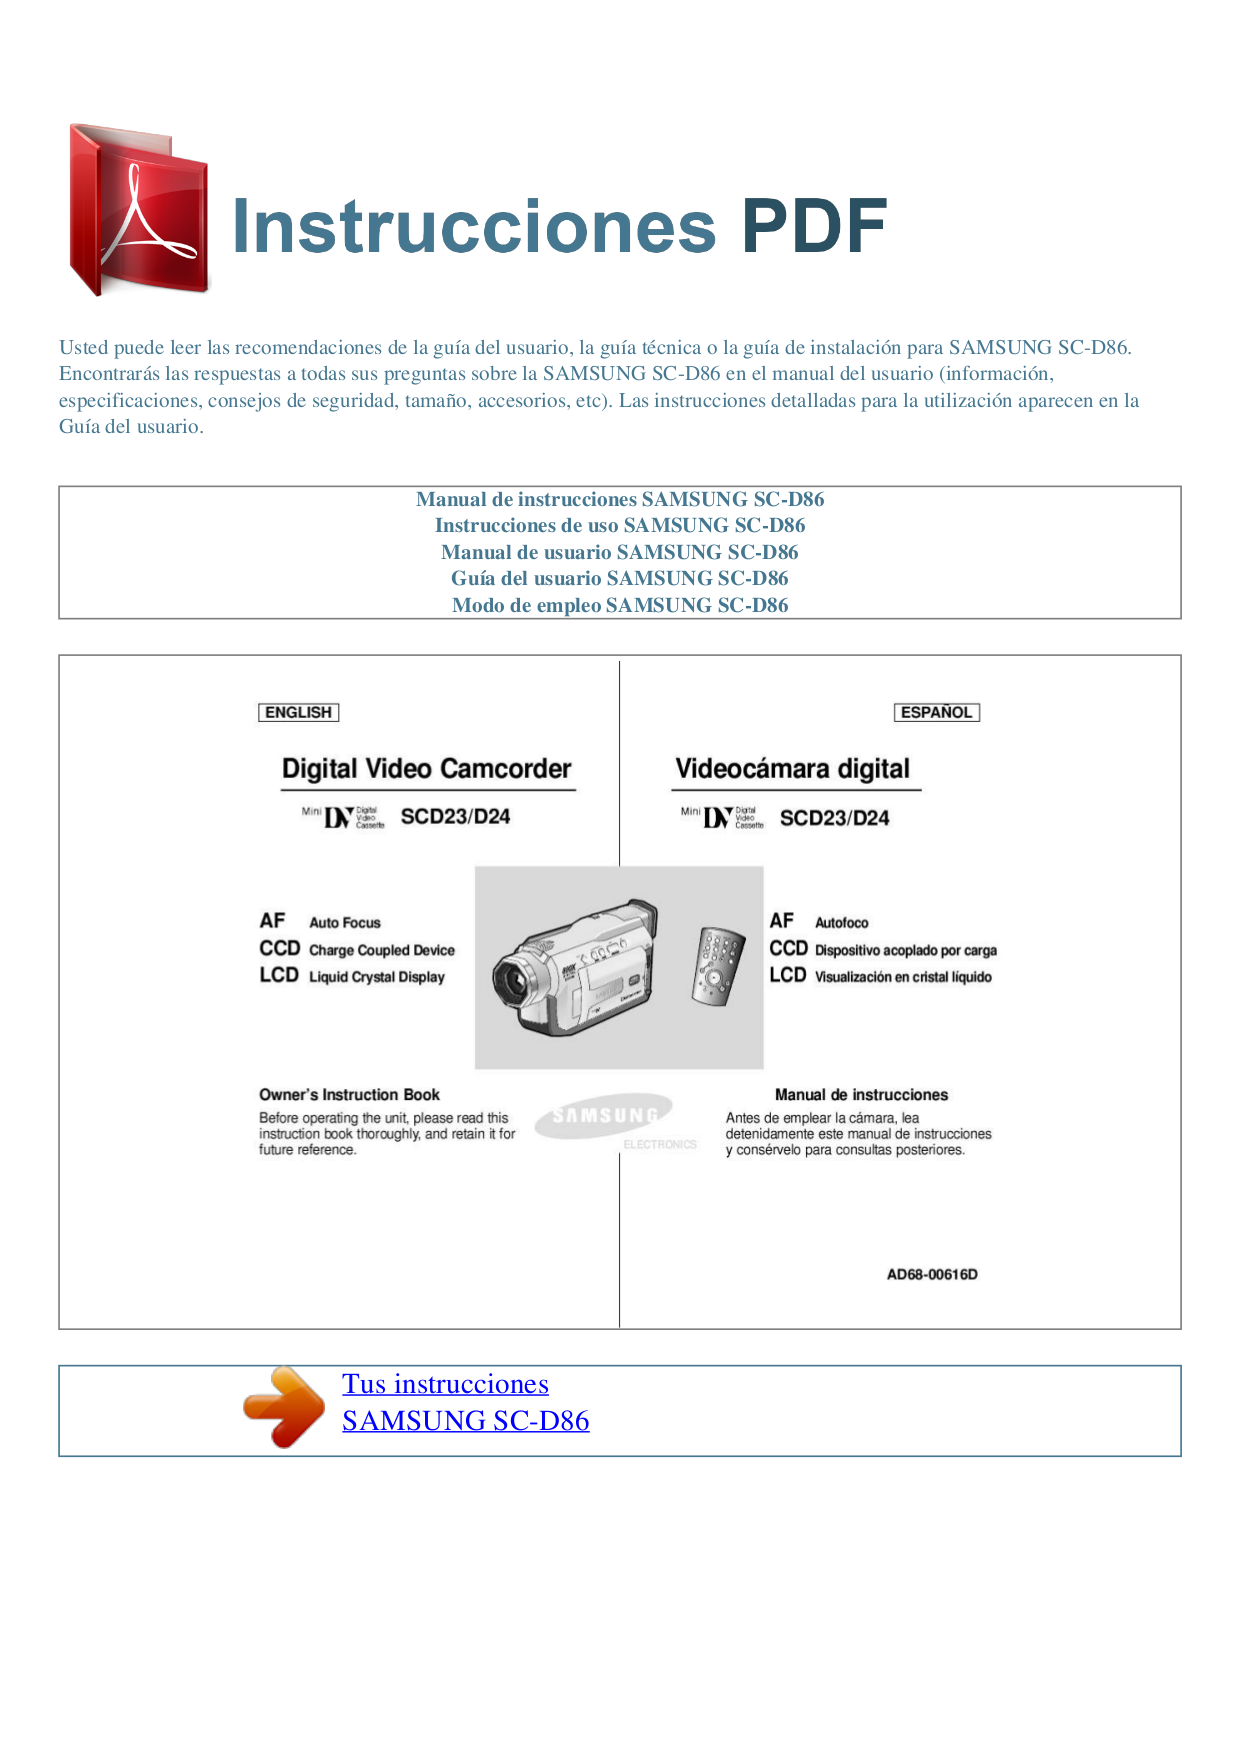 pdf for Samsung Camcorders SC-D86 manual